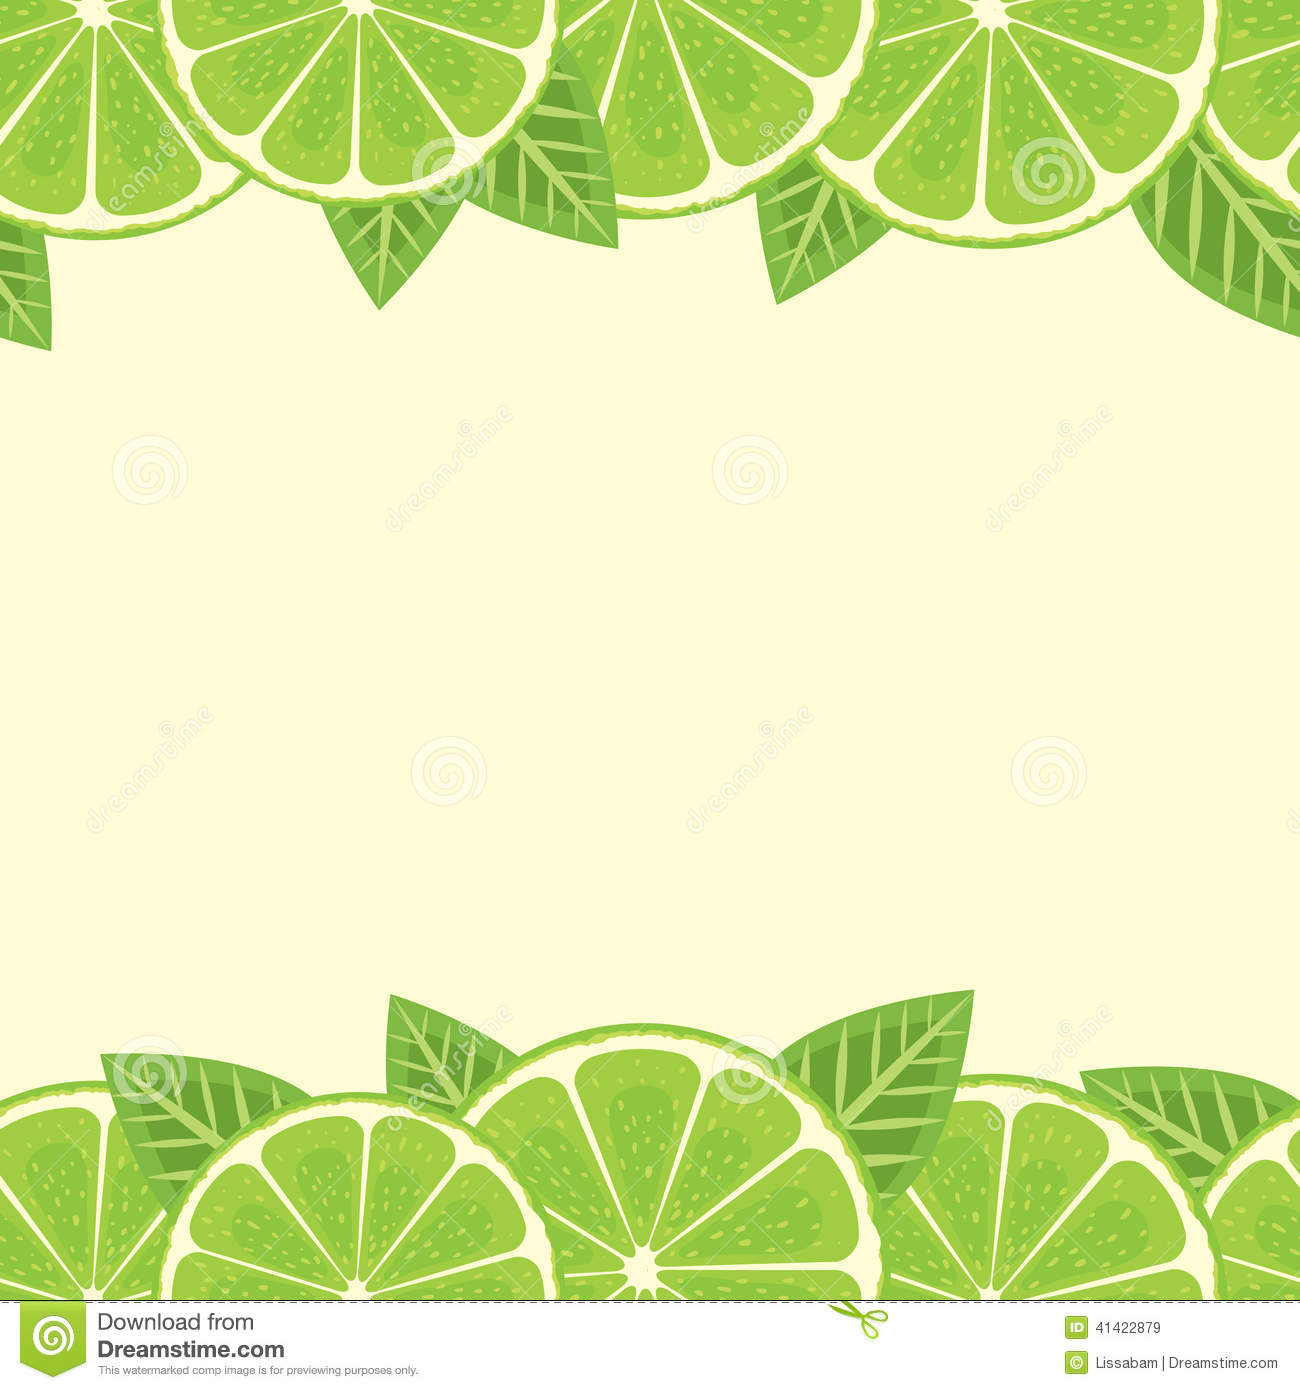 Lime border stock vector. Image of sour, edge, image - 41422879